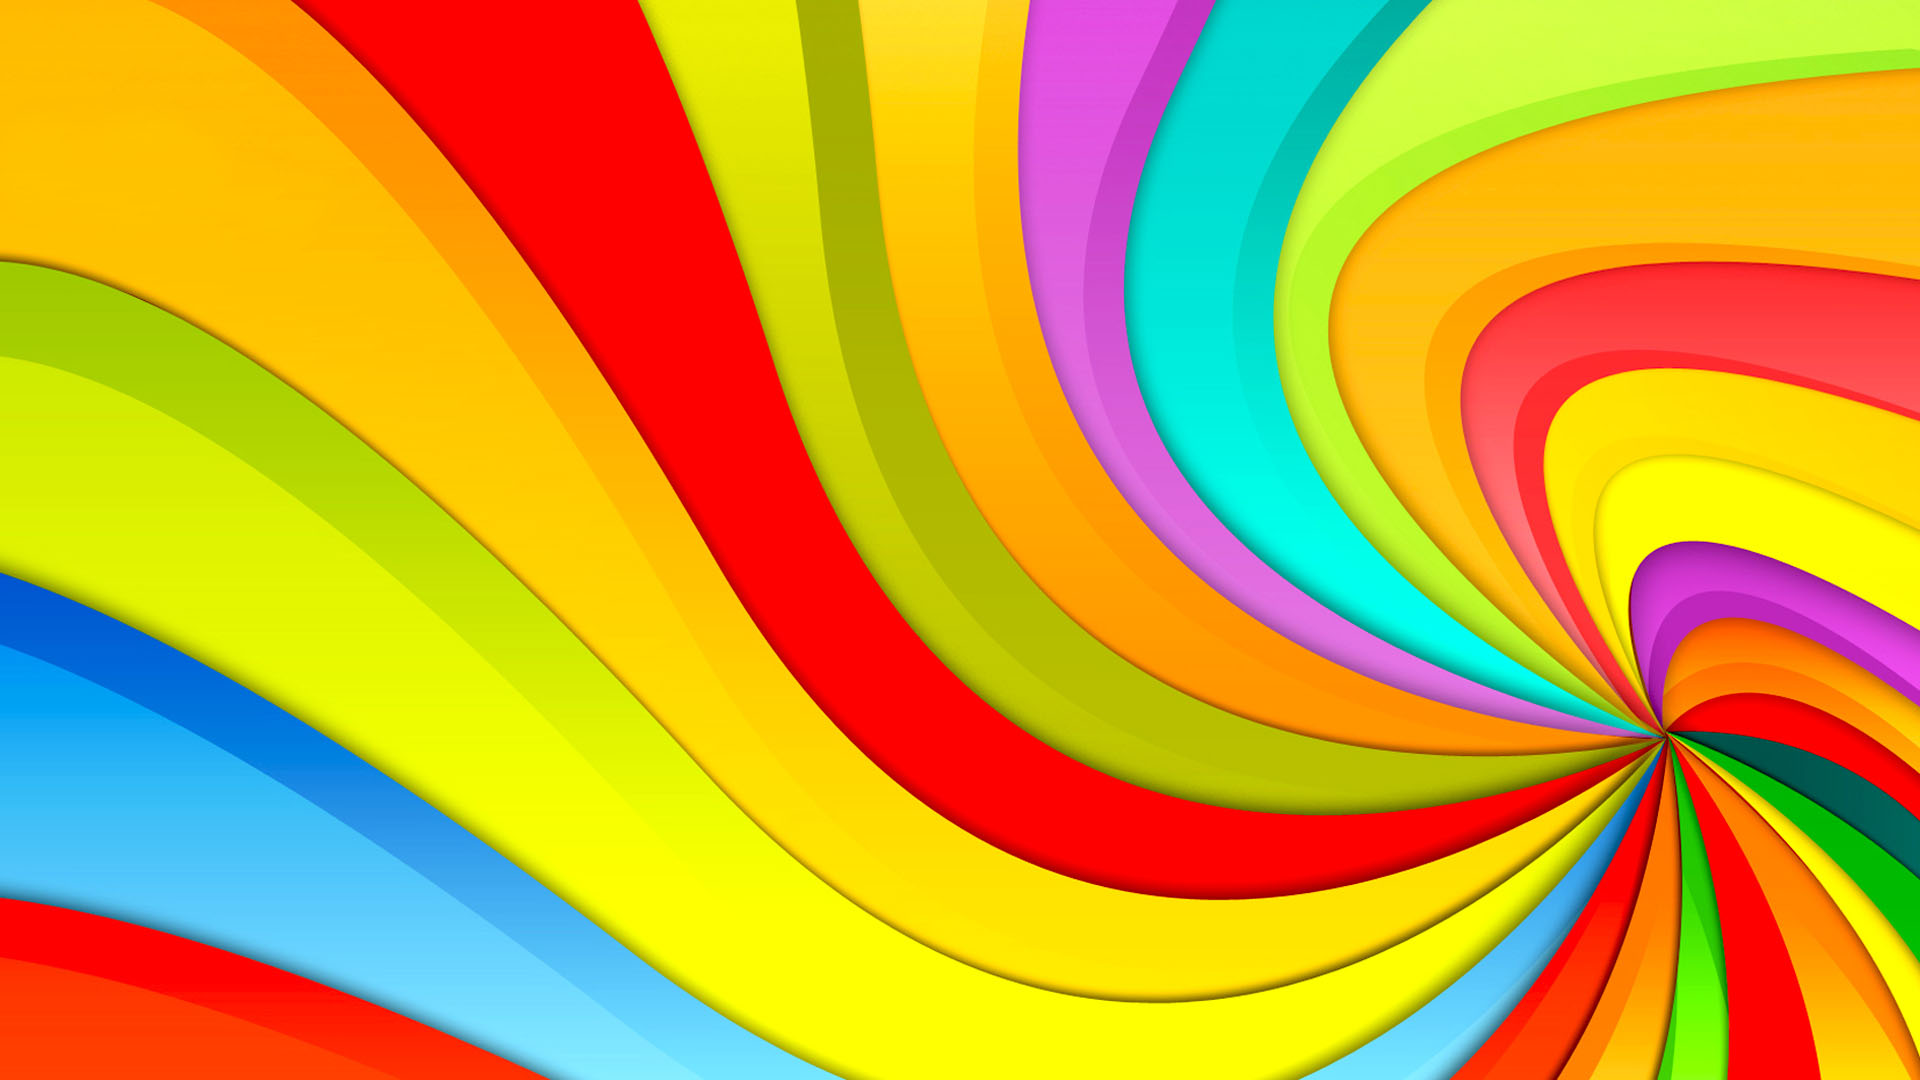 Bright Colorful Wallpaper Wallpapers Bright Colors Backgrounds